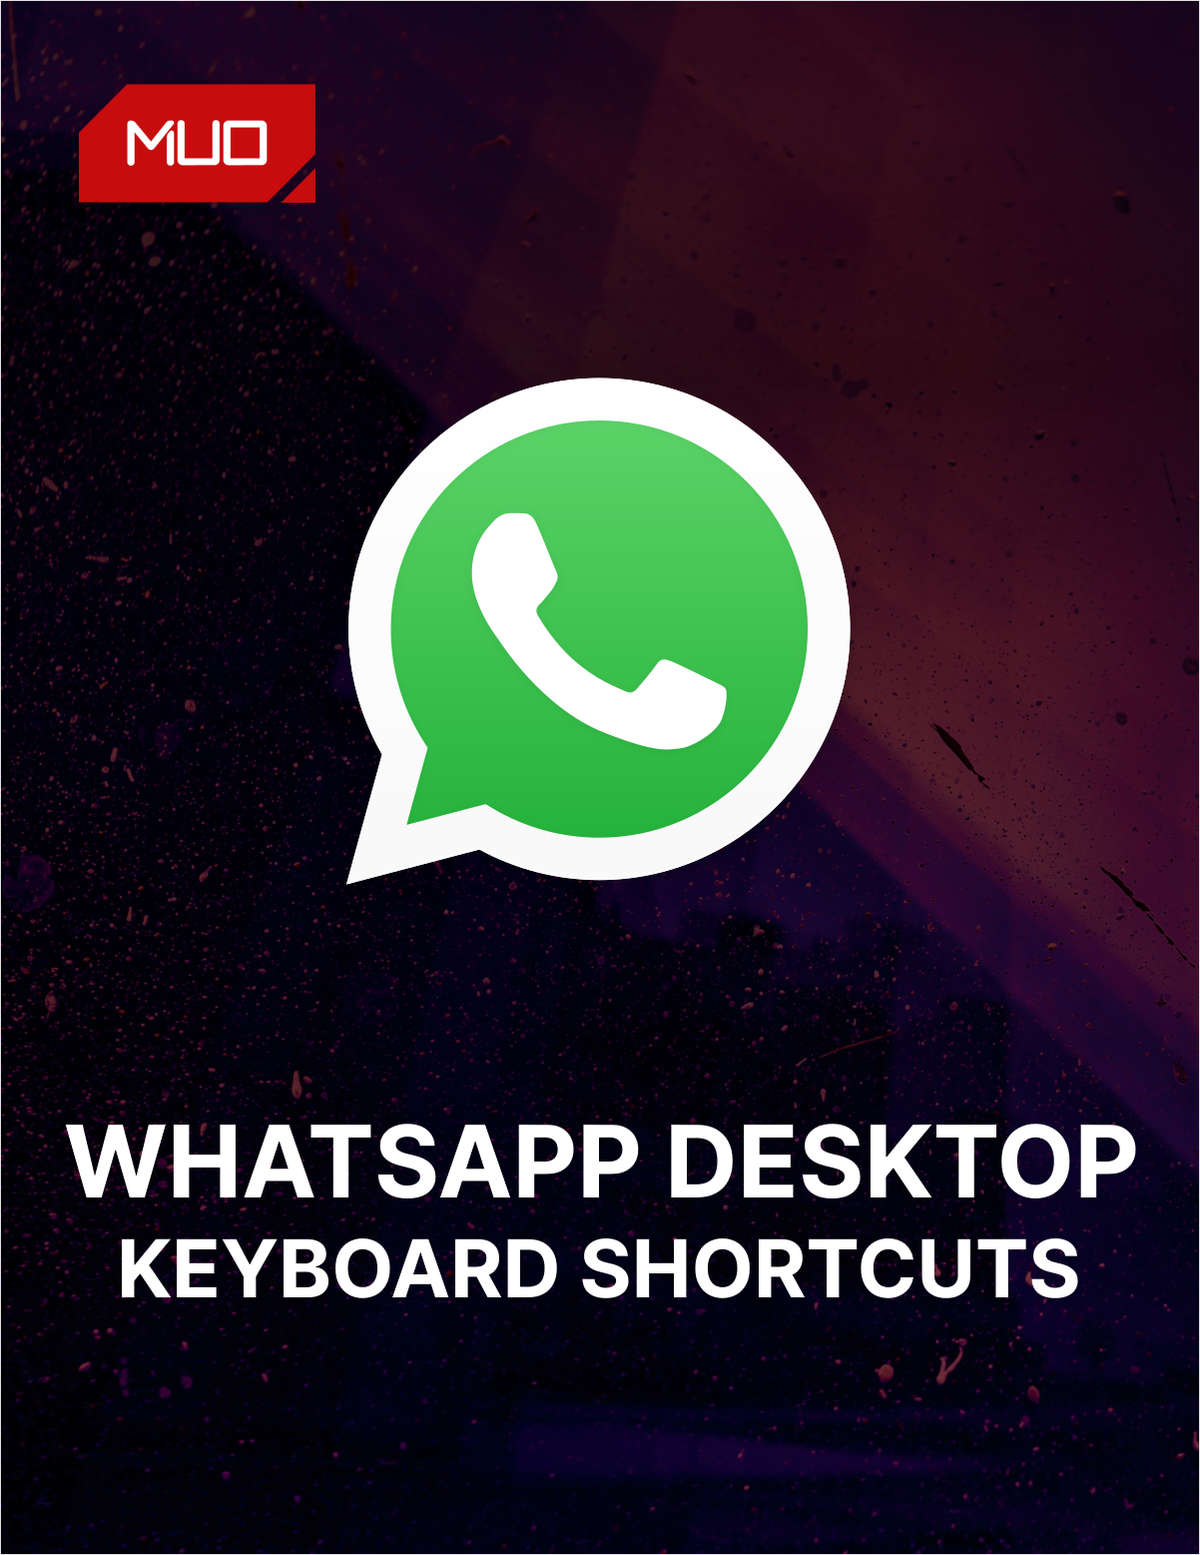 WhatsApp Desktop: Every Keyboard Shortcut You Need to Know